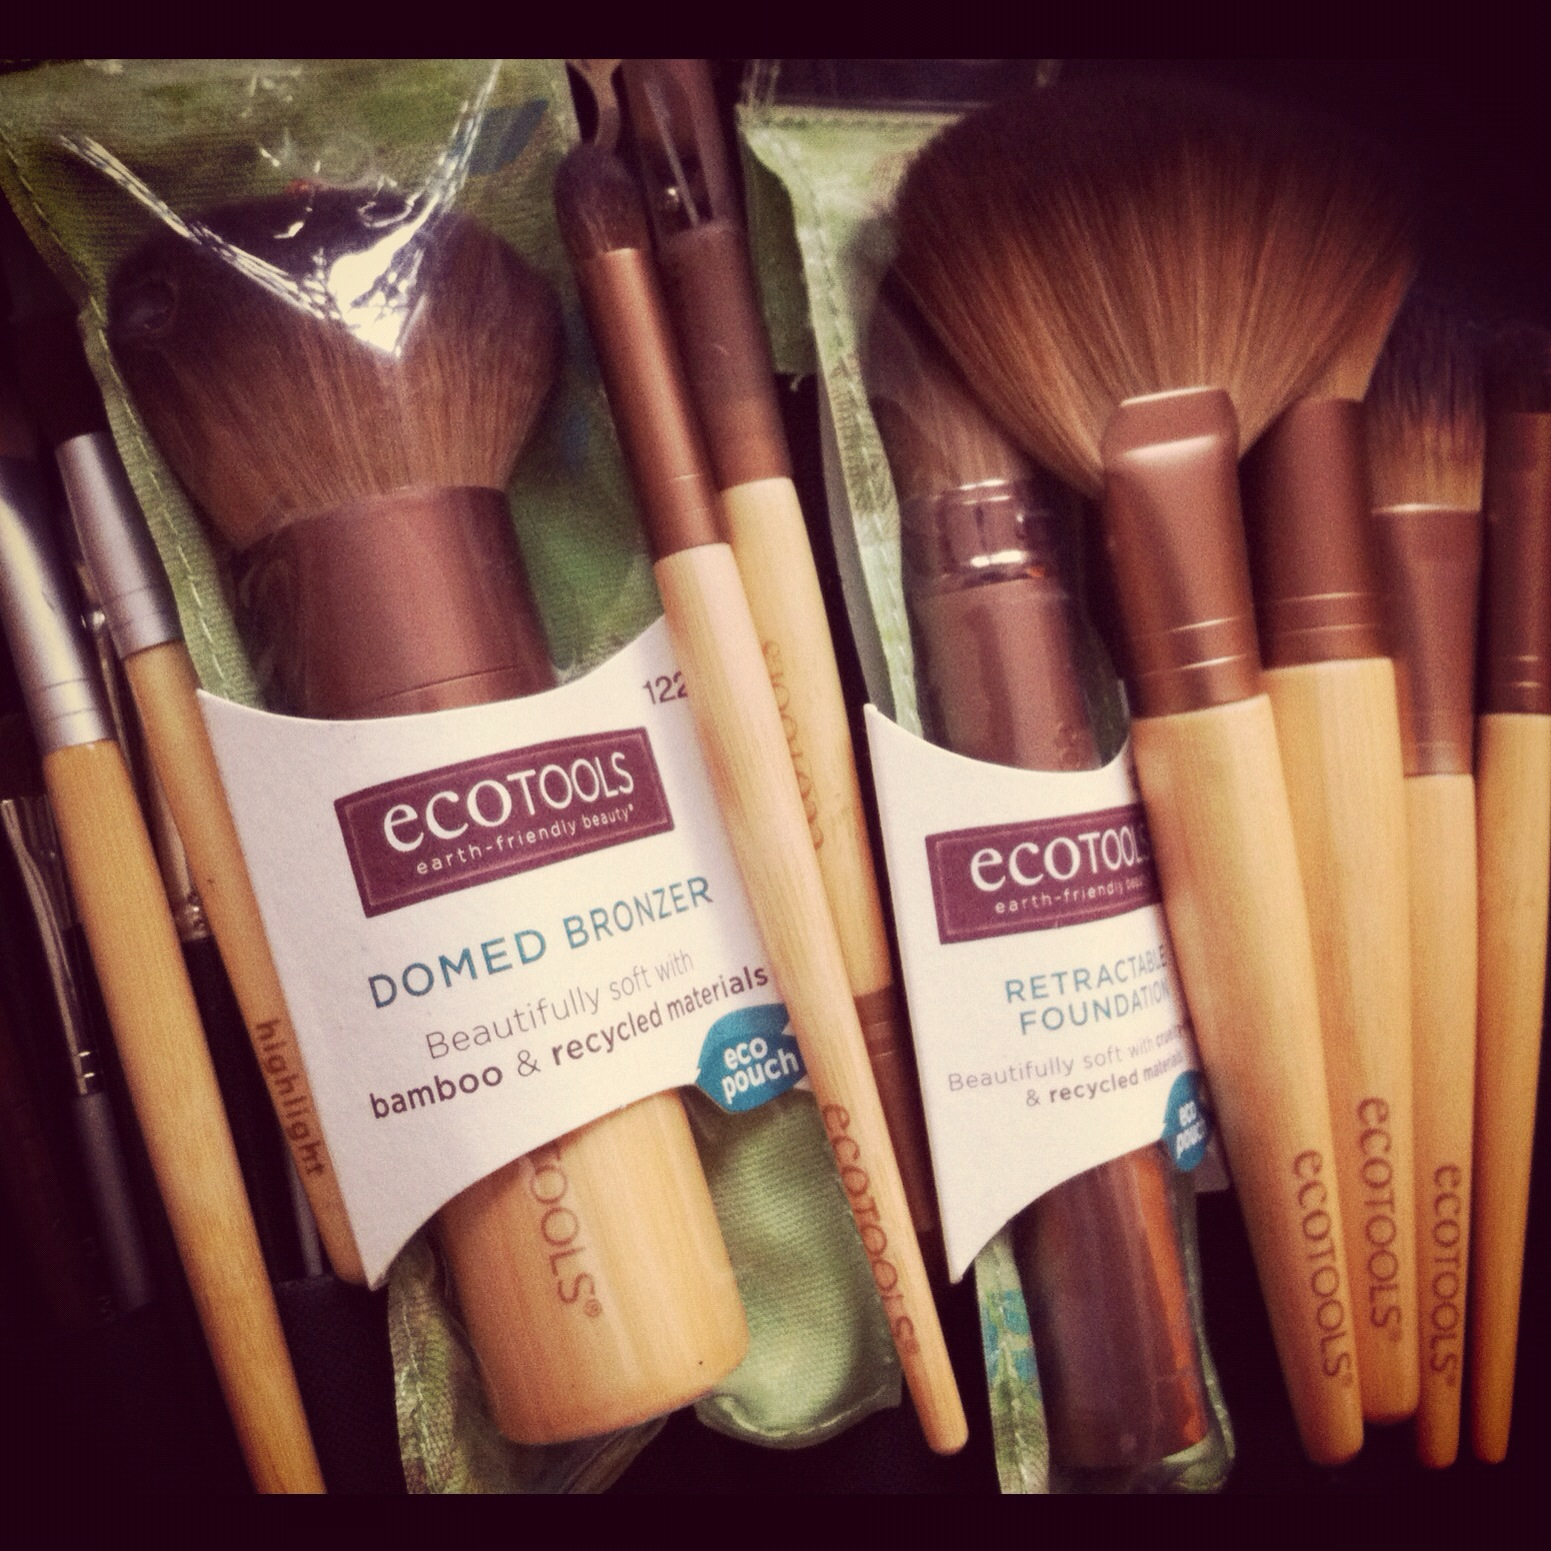 New additions to the kit – ecoTools